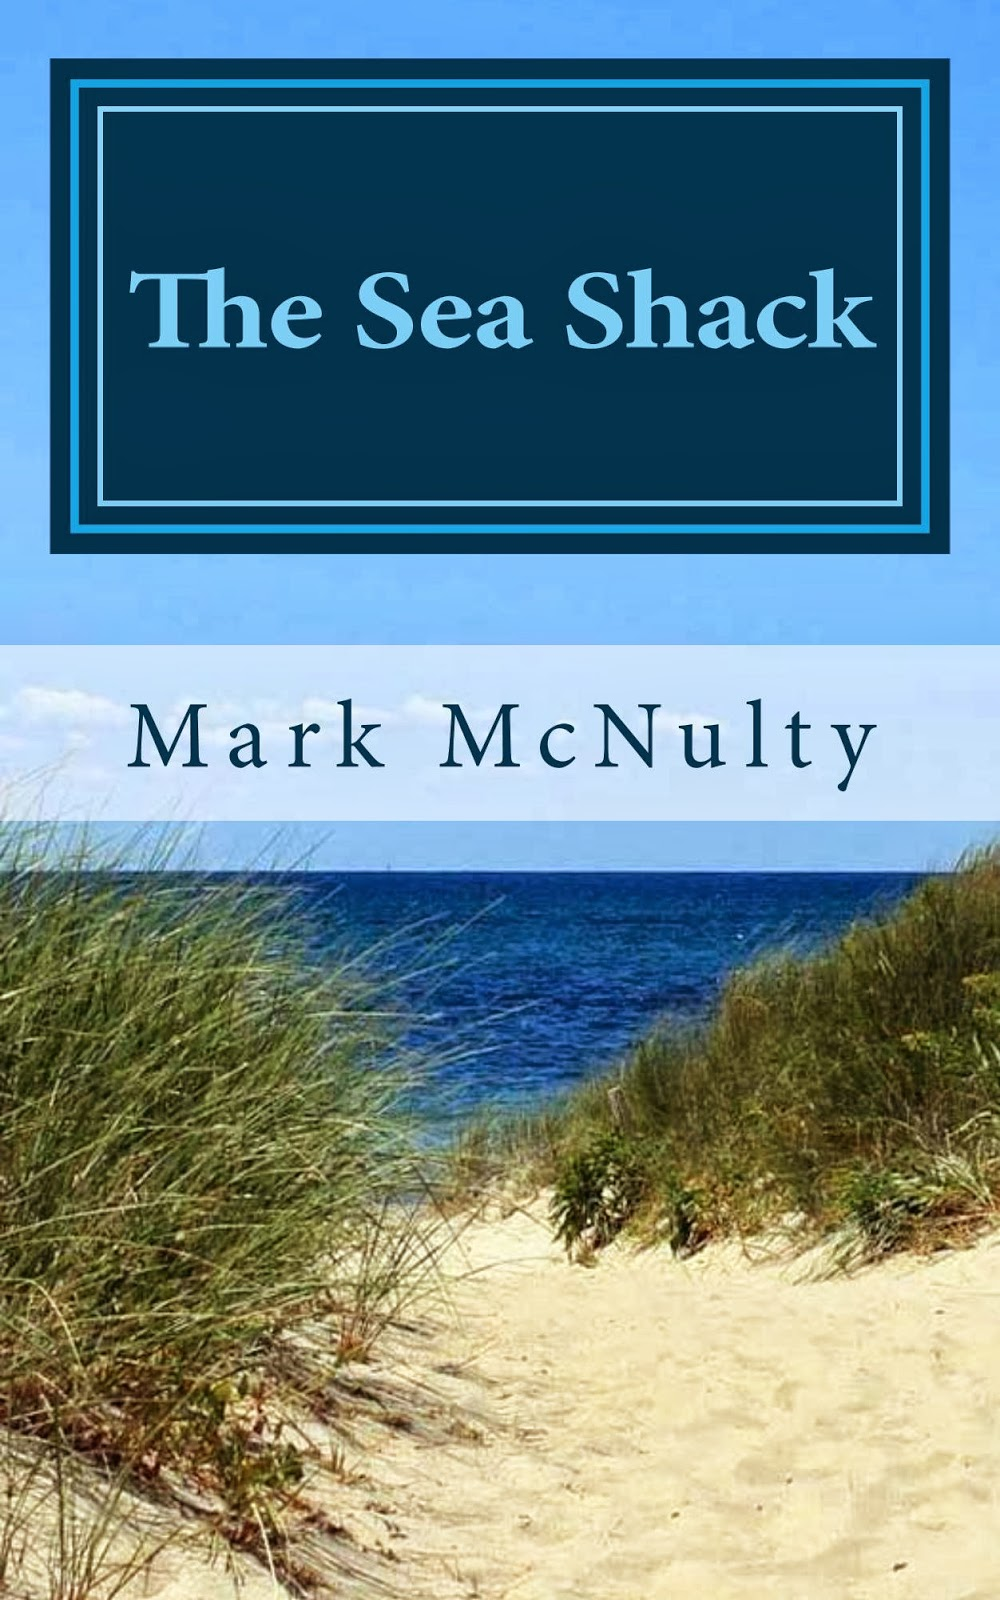 http://www.amazon.com/The-Sea-Shack-Mark-McNulty/dp/1482794683/ref=sr_1_1?ie=UTF8&qid=1391569210&sr=8-1&keywords=the+sea+shack